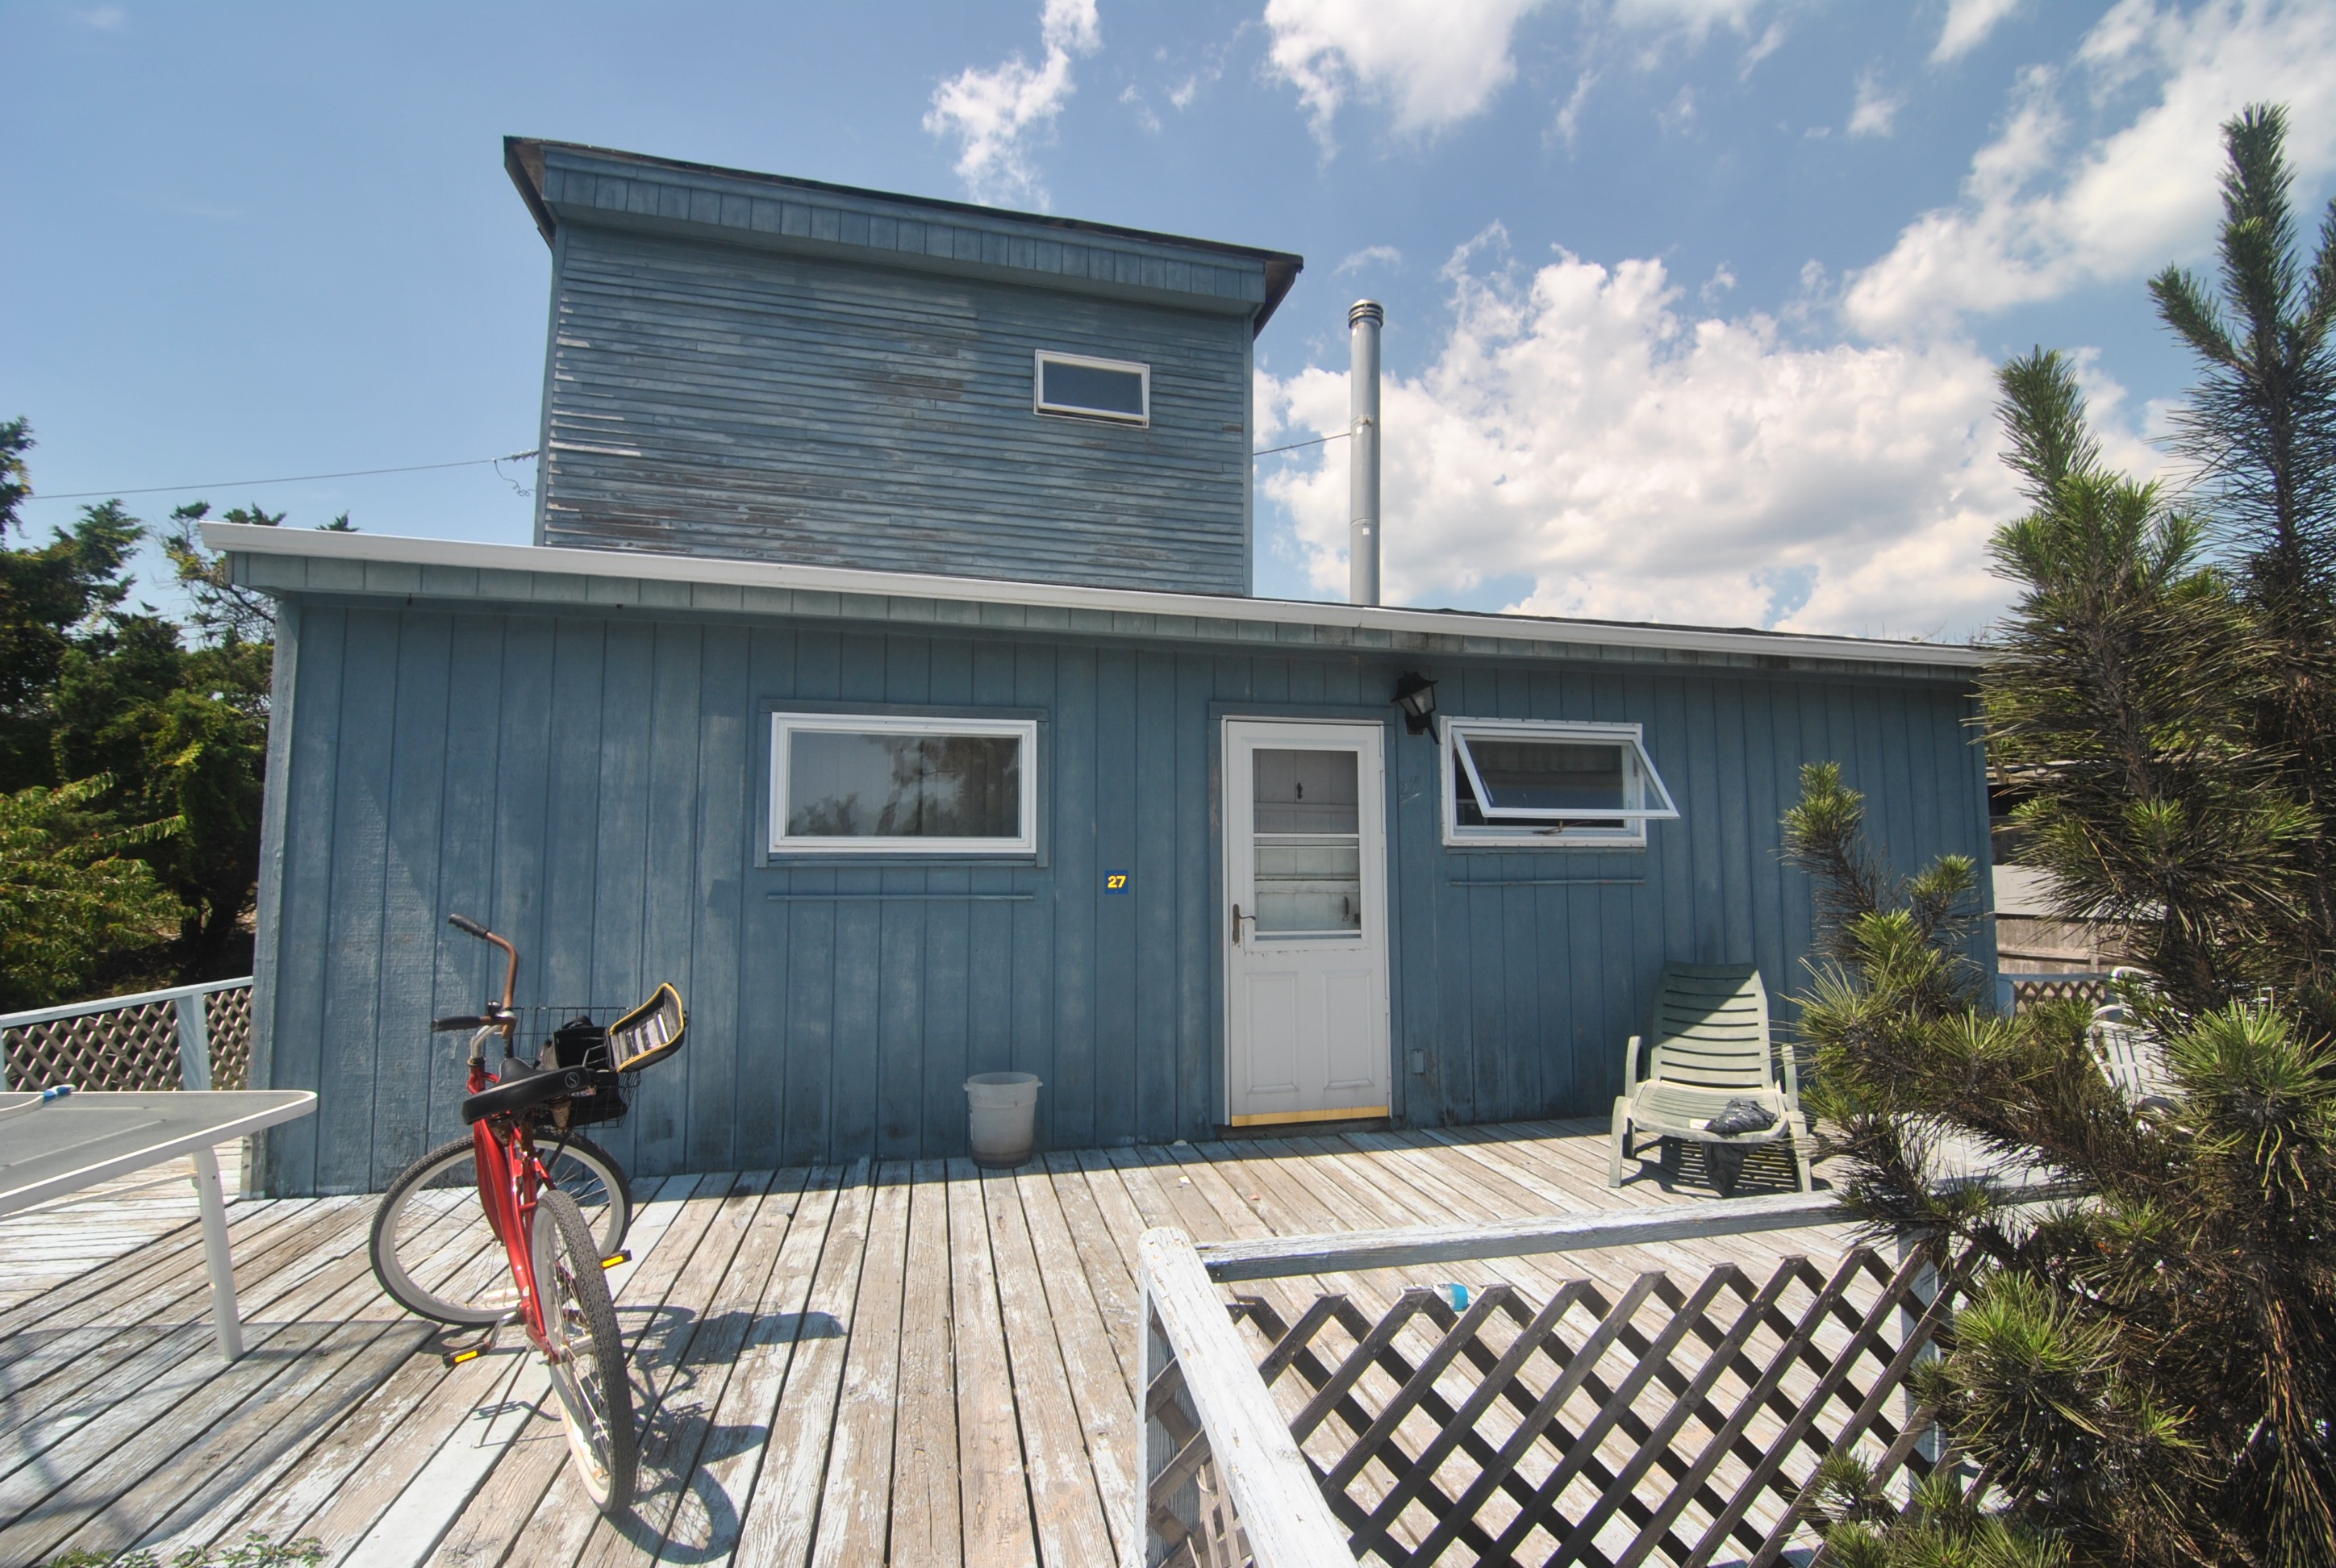 Seasonal Rental in the Heart of Ocean Bay Park located on the Ocean Block. 3 Bedrooms and 2 Full Bathrooms. Comfortable Living Area with Wood Burning Stove. Large Deck Space and Close to the Ocean.  2017 Summer Season only $24,500